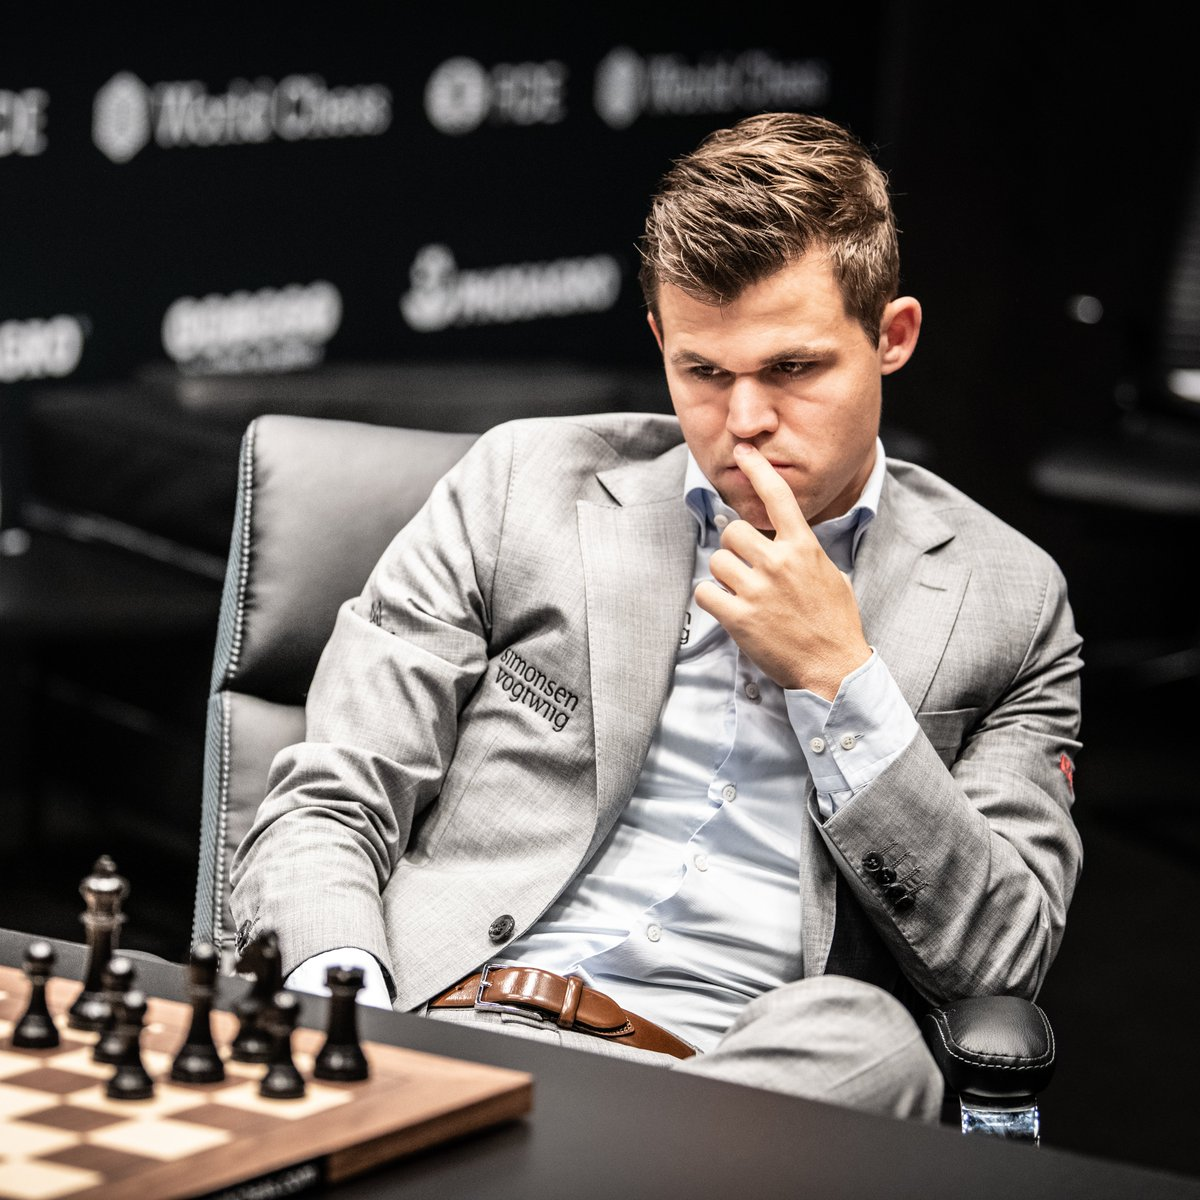 test Twitter Media - Carlsen 🇳🇴 will defend his title against the winner of the postponed Candidates Tournament, which is due to conclude in Ekaterinburg (Russia), in April. The two players will compete for a prize fund of EUR 2 million (AED 9 million), the highest in recent times. @expo2020dubai https://t.co/sMCrCiIxa6